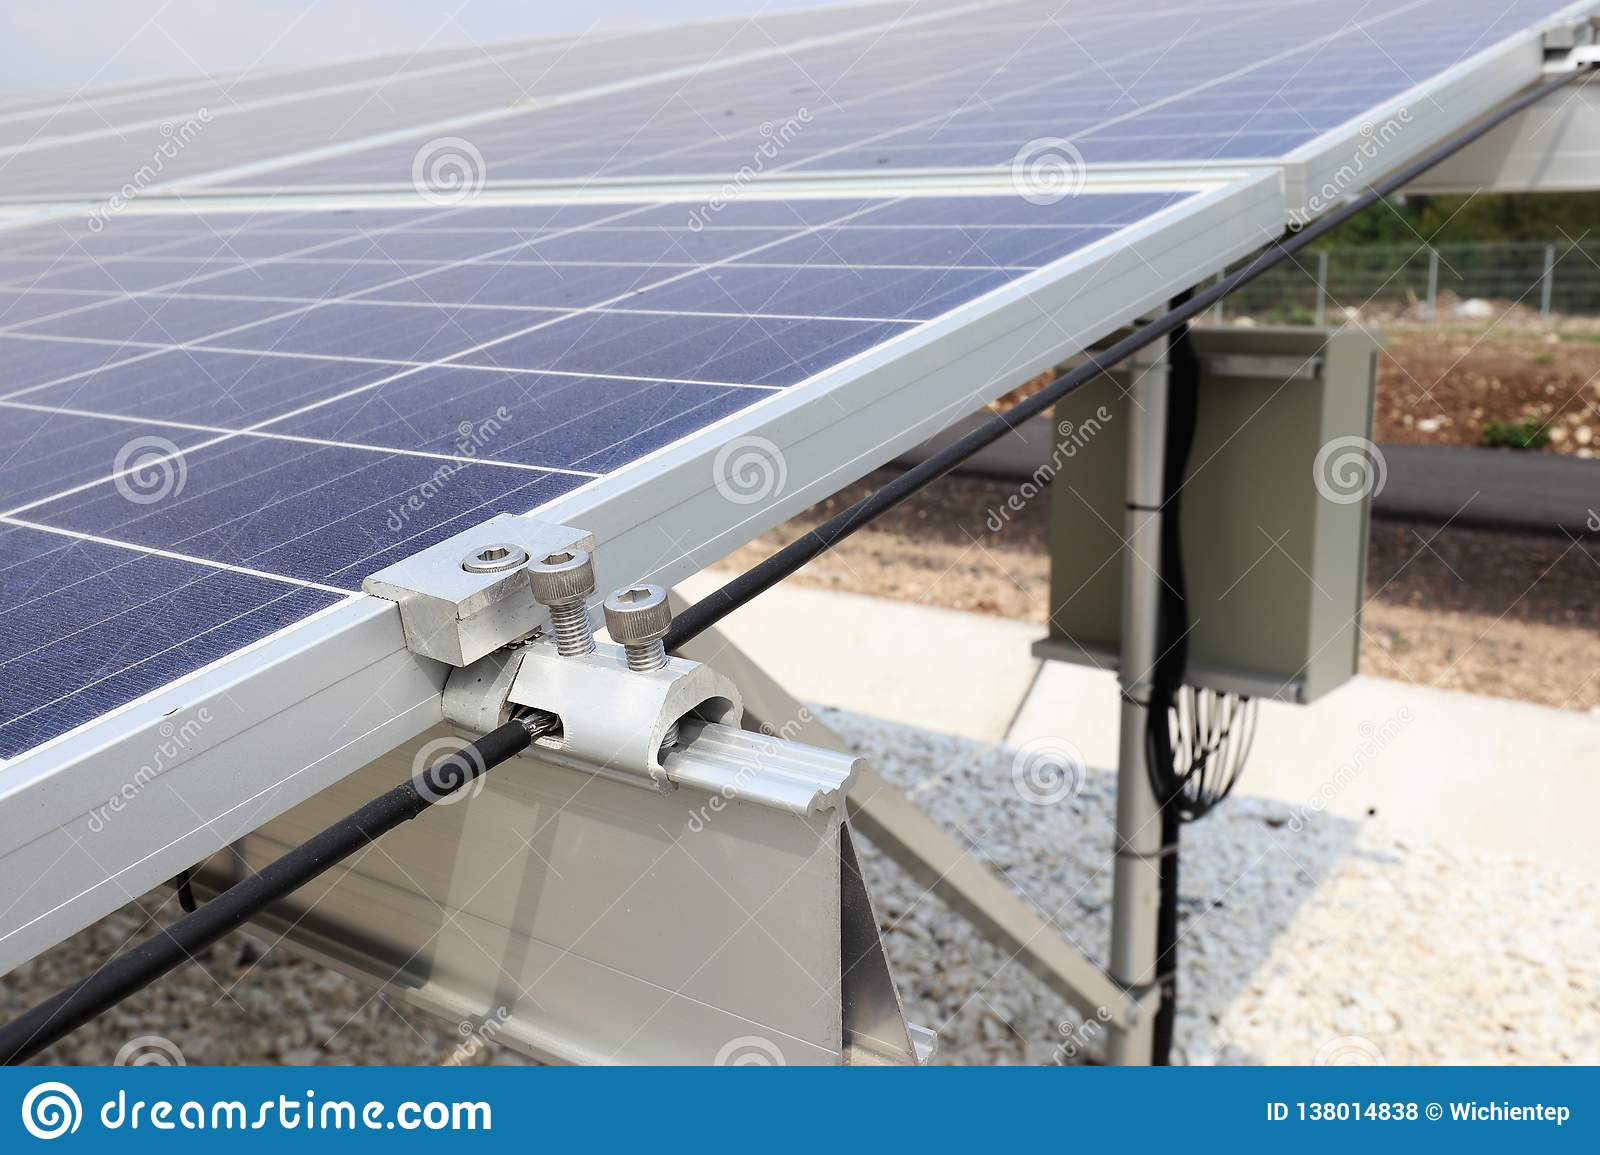 On Ground Solar With Grounding And End Clamps Installation Stock Photo Image Of Solar Kits 138014838